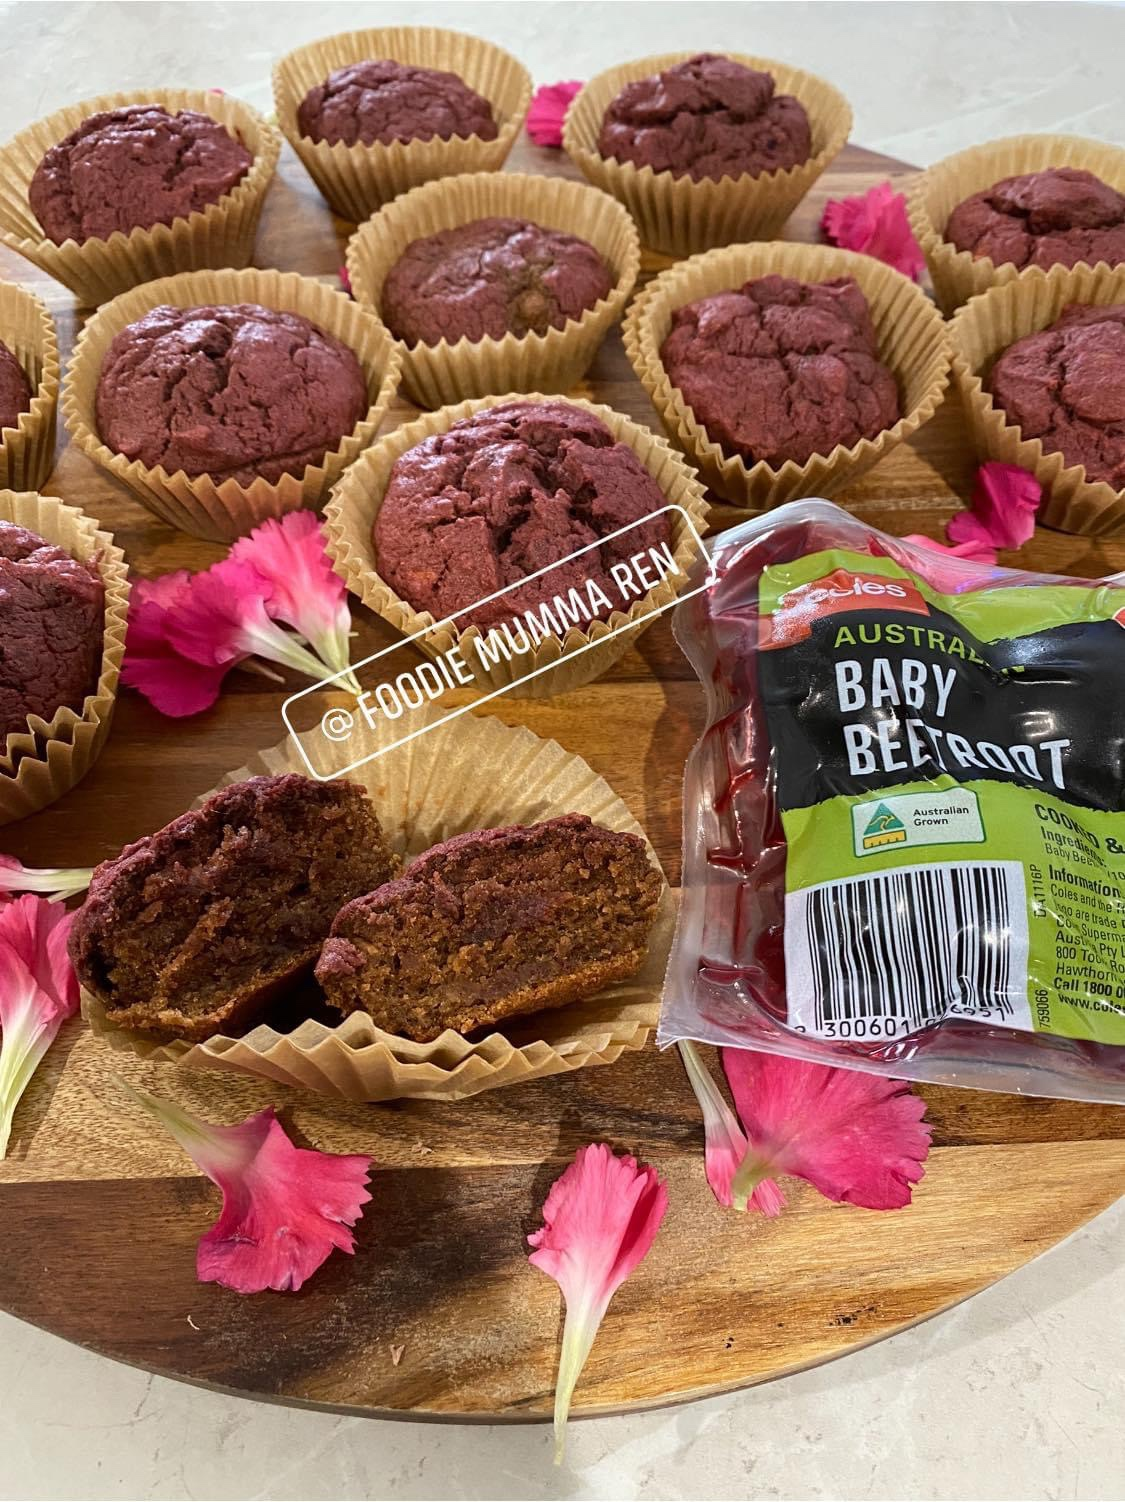 Beetroot, Banana & Chocolate Muffins